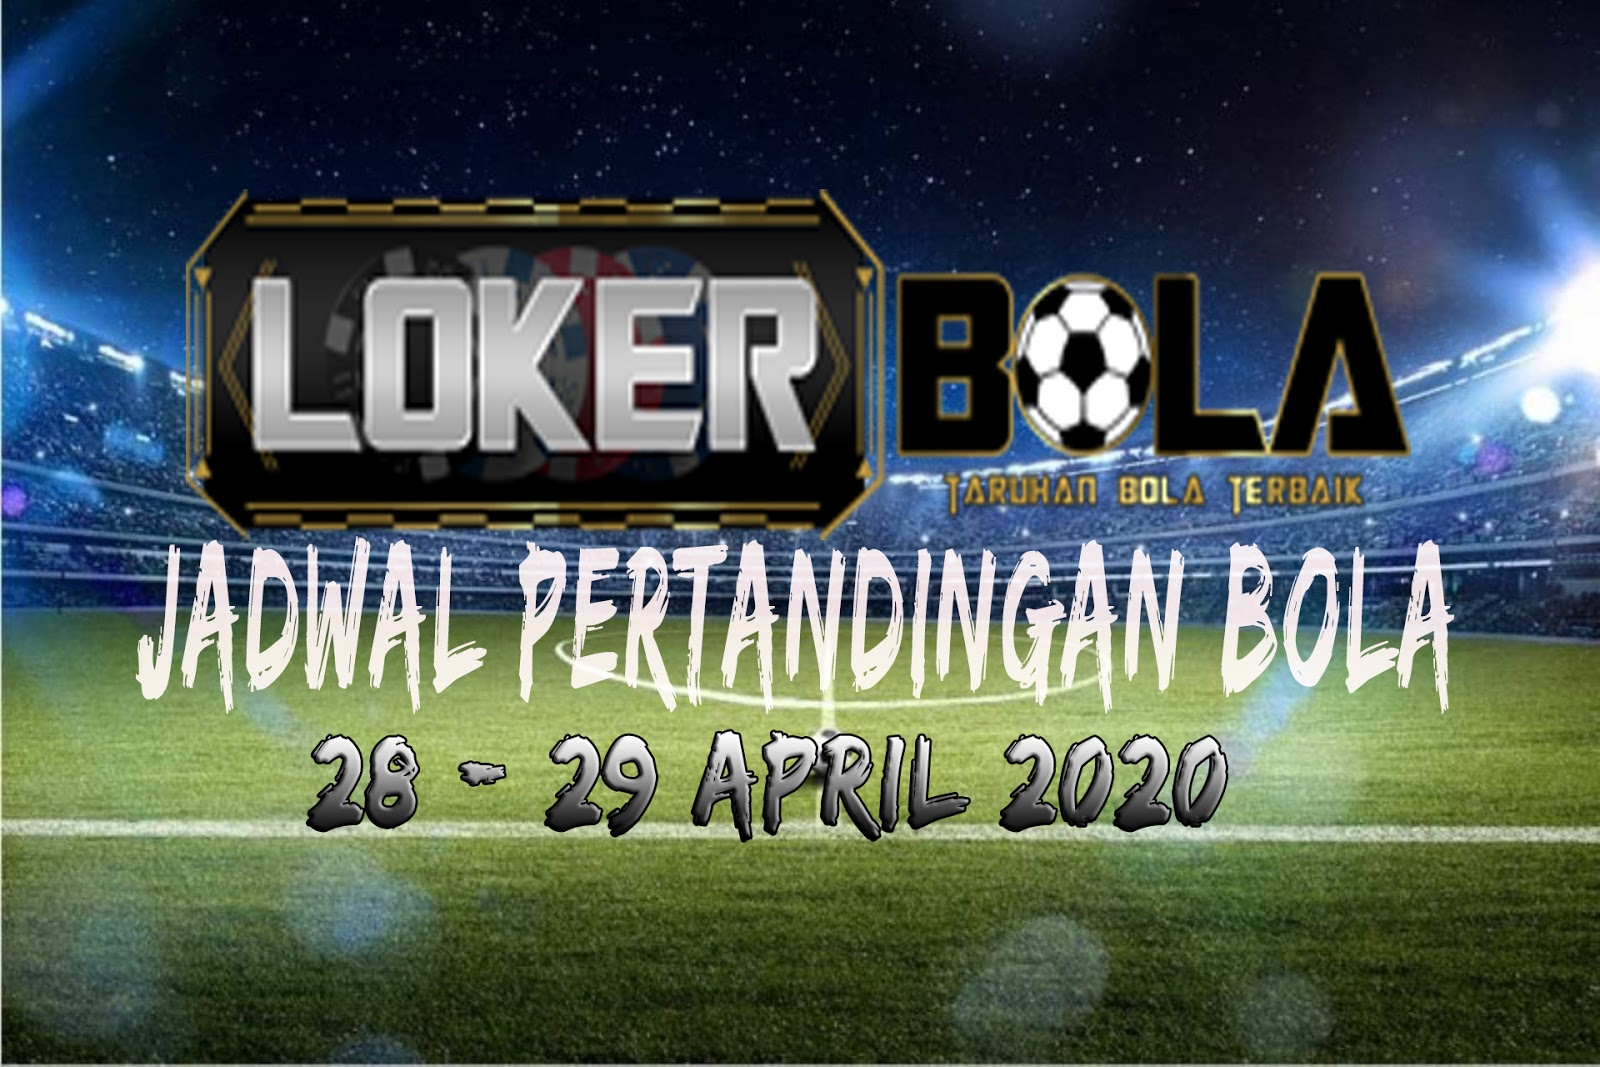 JADWAL PERTANDINGAN BOLA 28 – 29 APRIL 2020